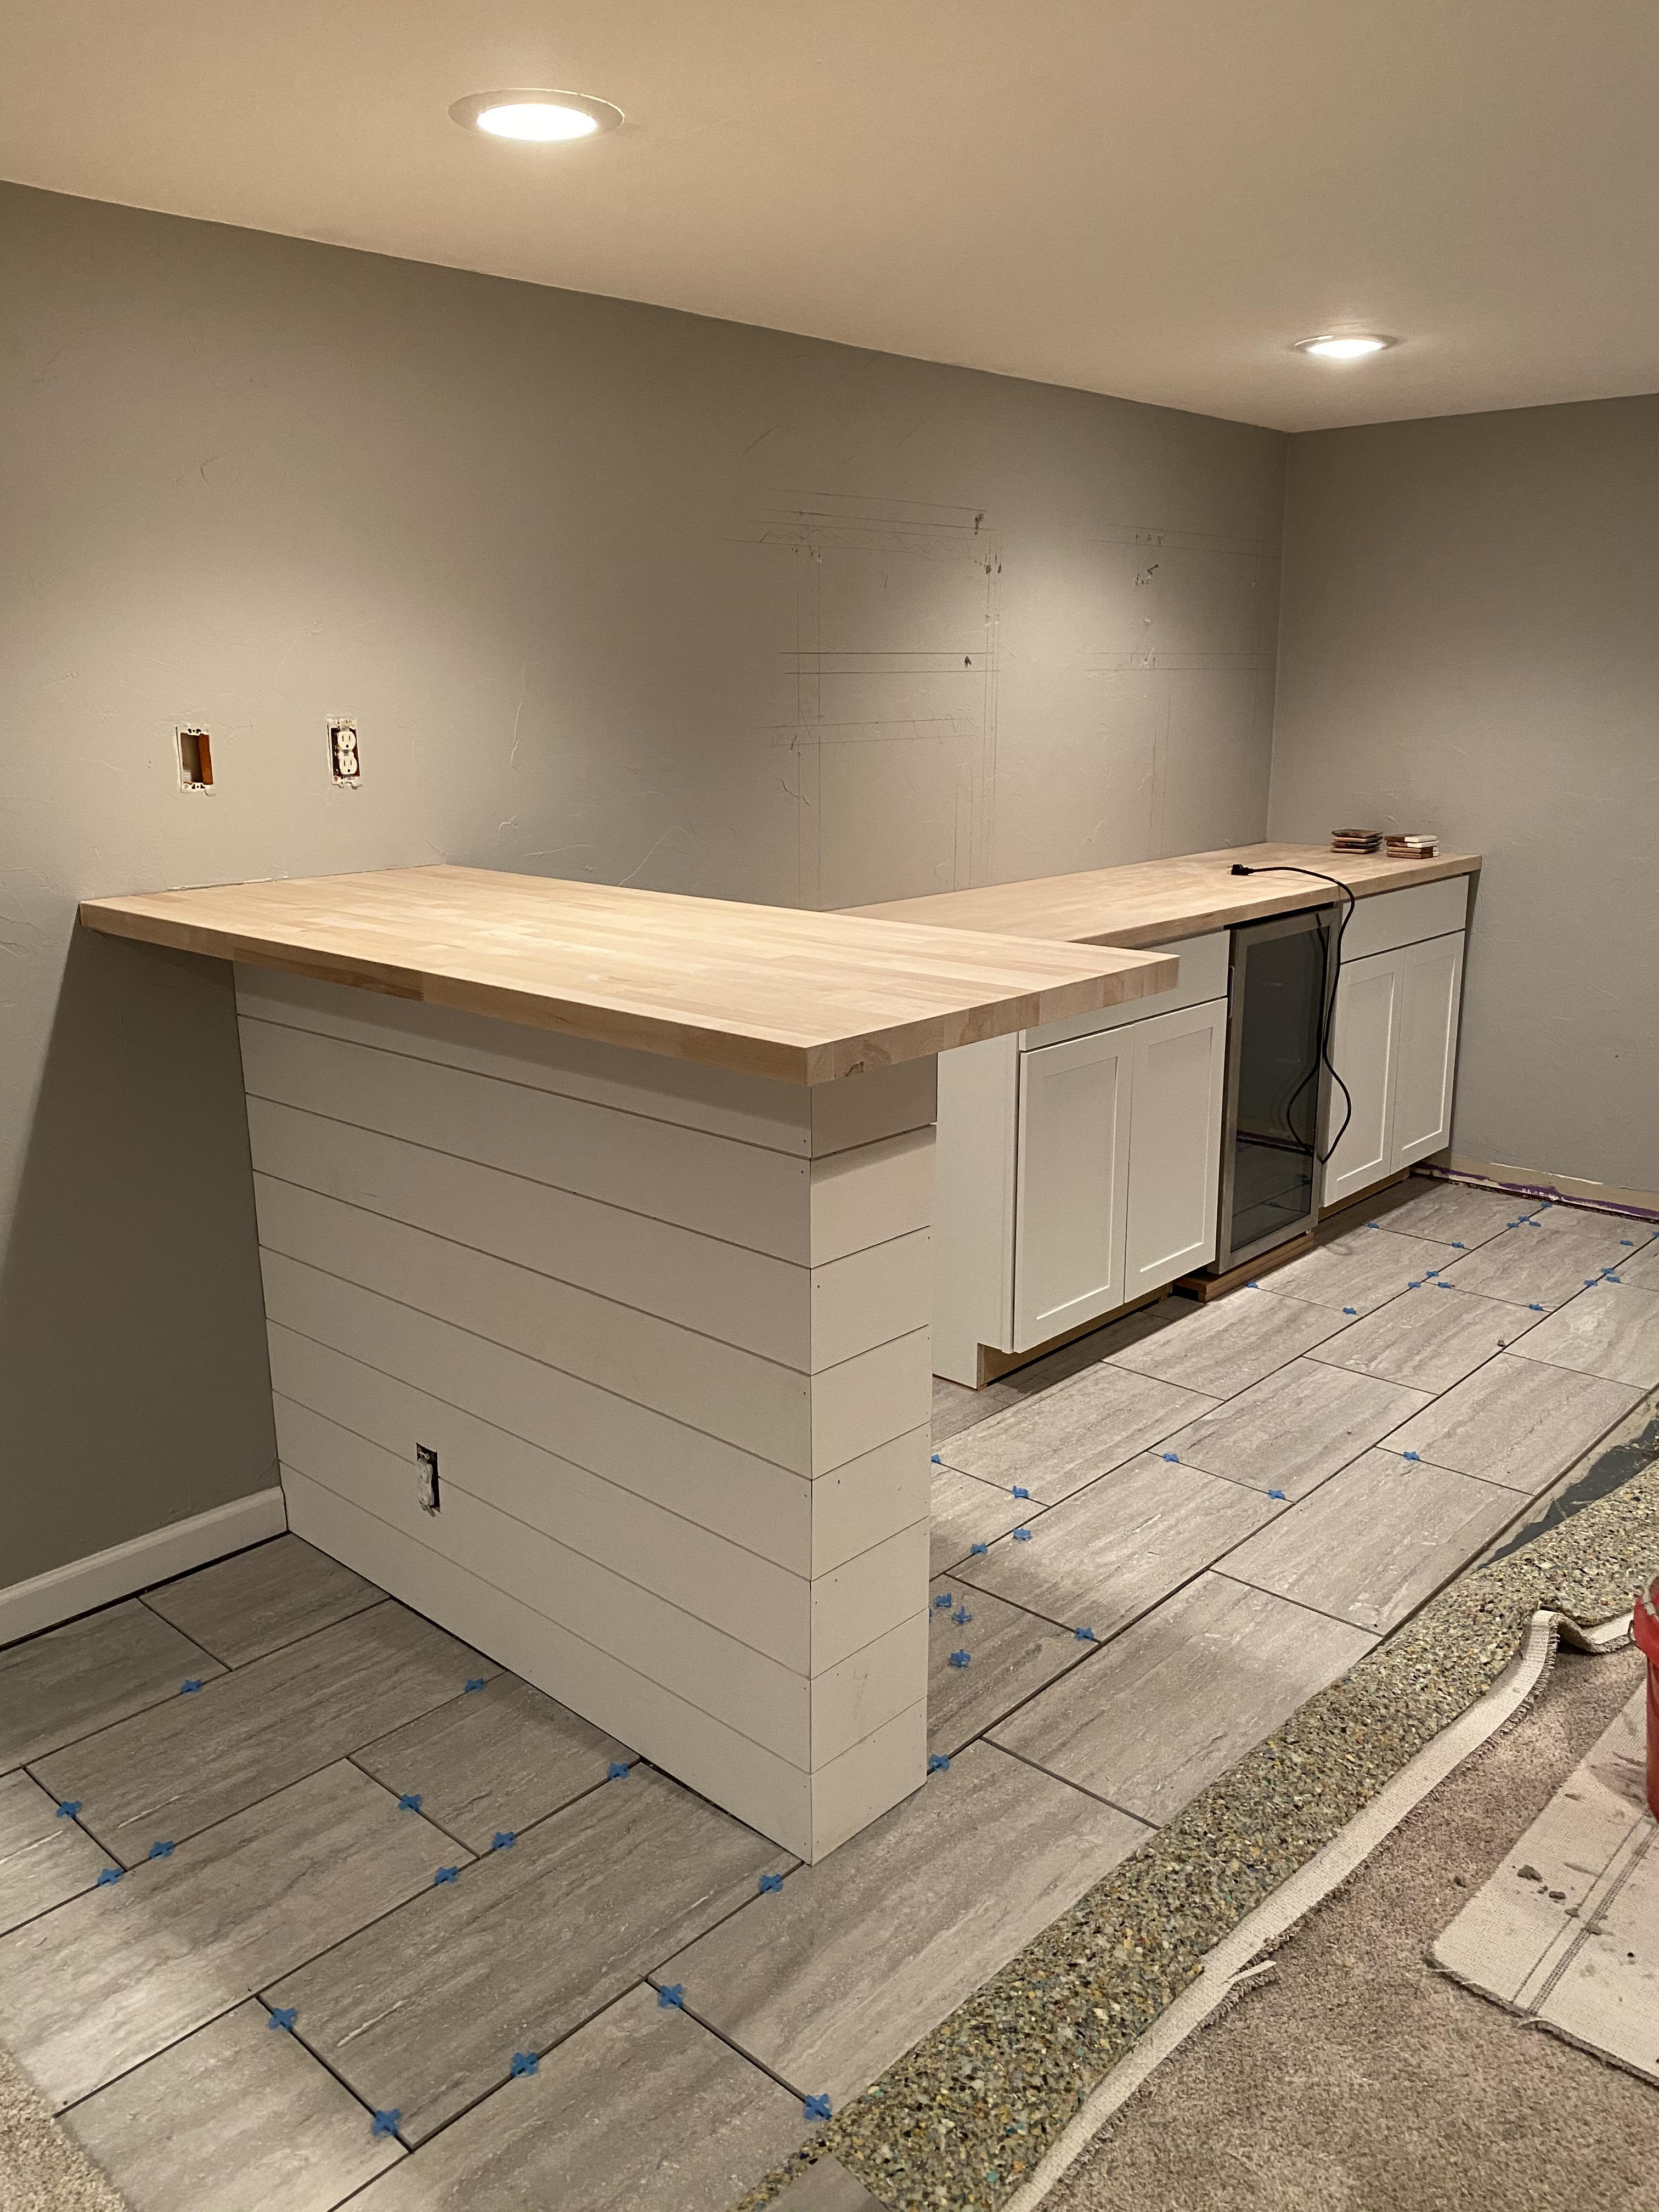 Basement Bar Coming Along Wall Above Base Cabinets Gets Subway Tile And Some Floating Shelves With Leds First Time Doing Floor Tile As I M Mainly A Finish Carpenter But I M Doing It